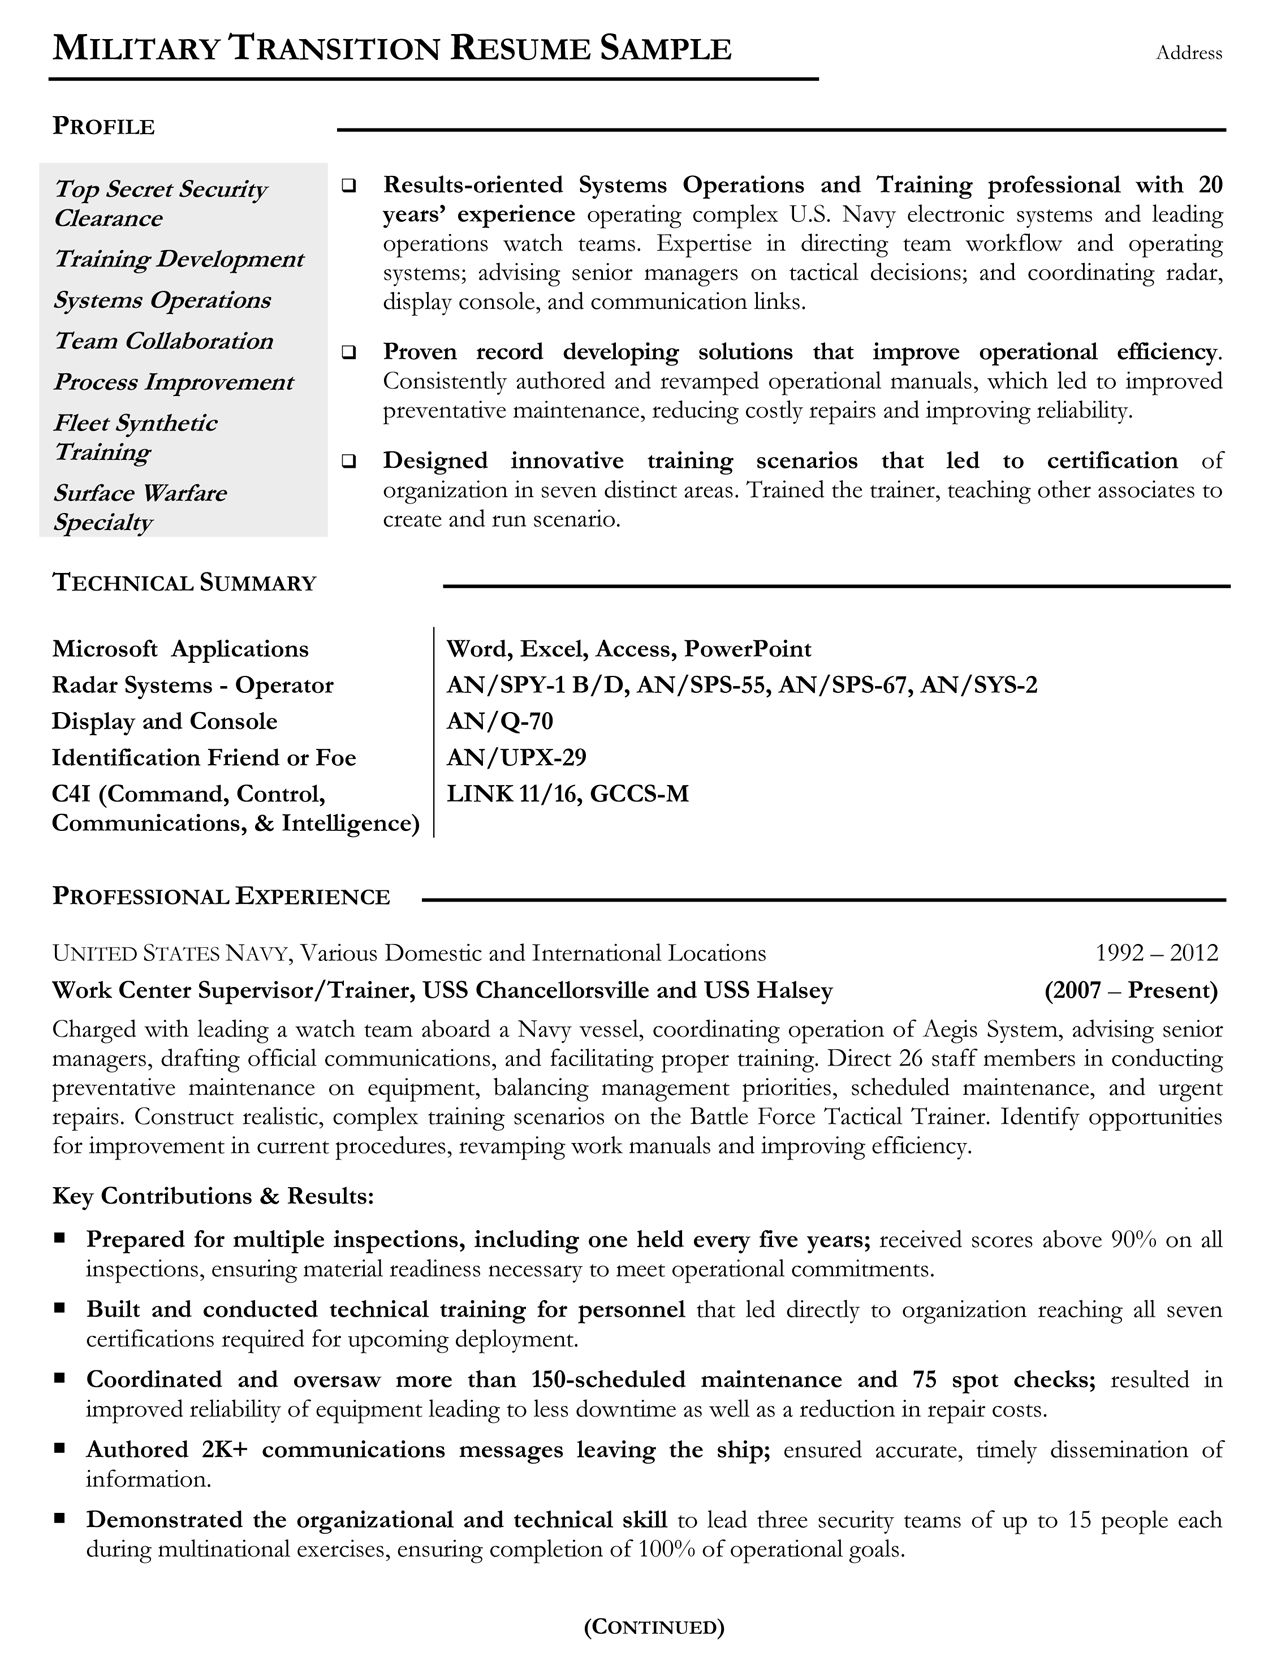 Veterans Resume Templates Pinterest Sample Resume Template